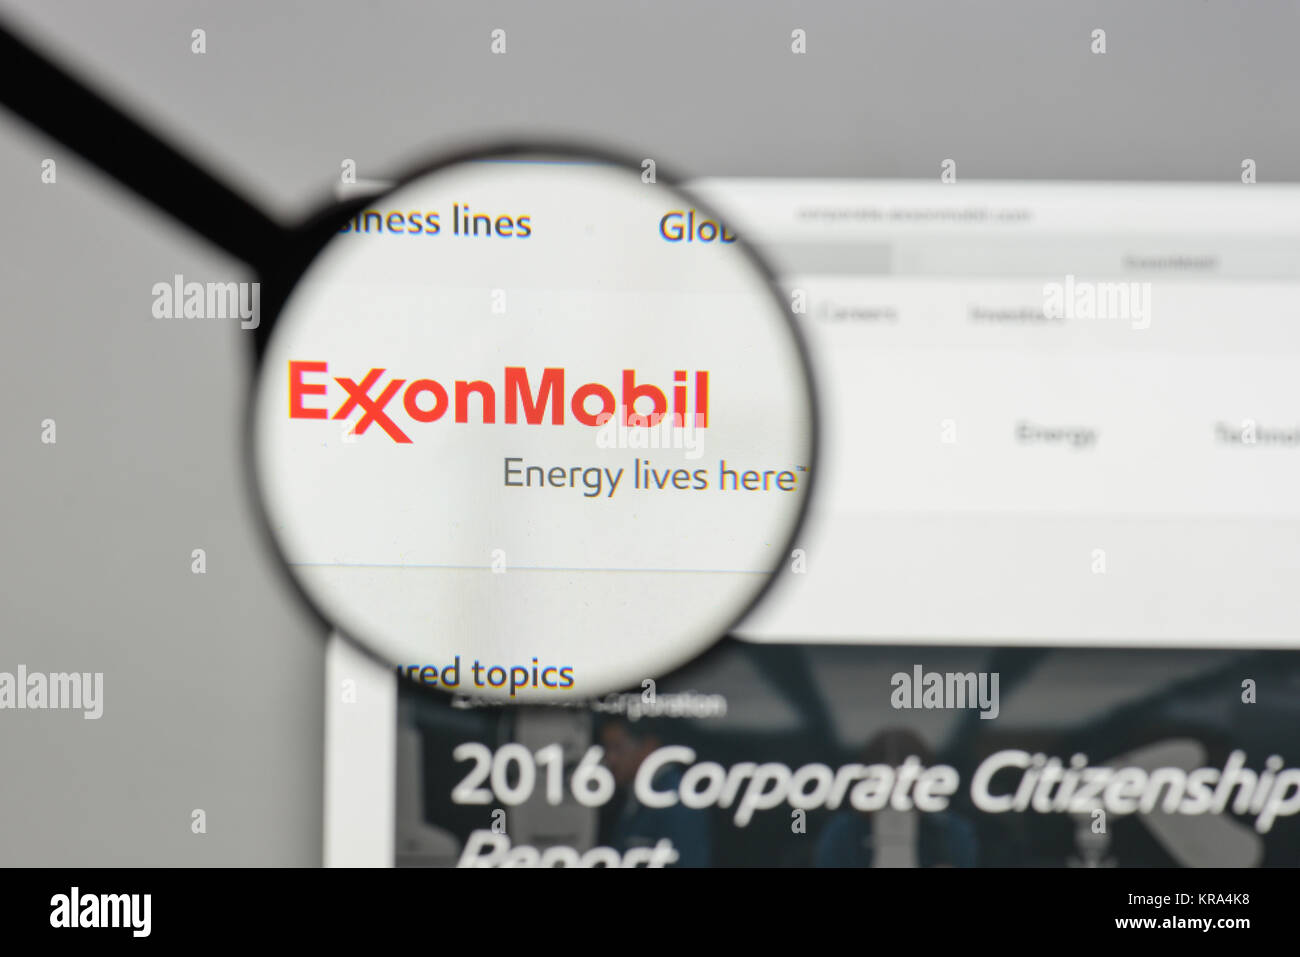 Milan, Italy - August 10, 2017: Exxon logo on the website homepage. - Stock Image